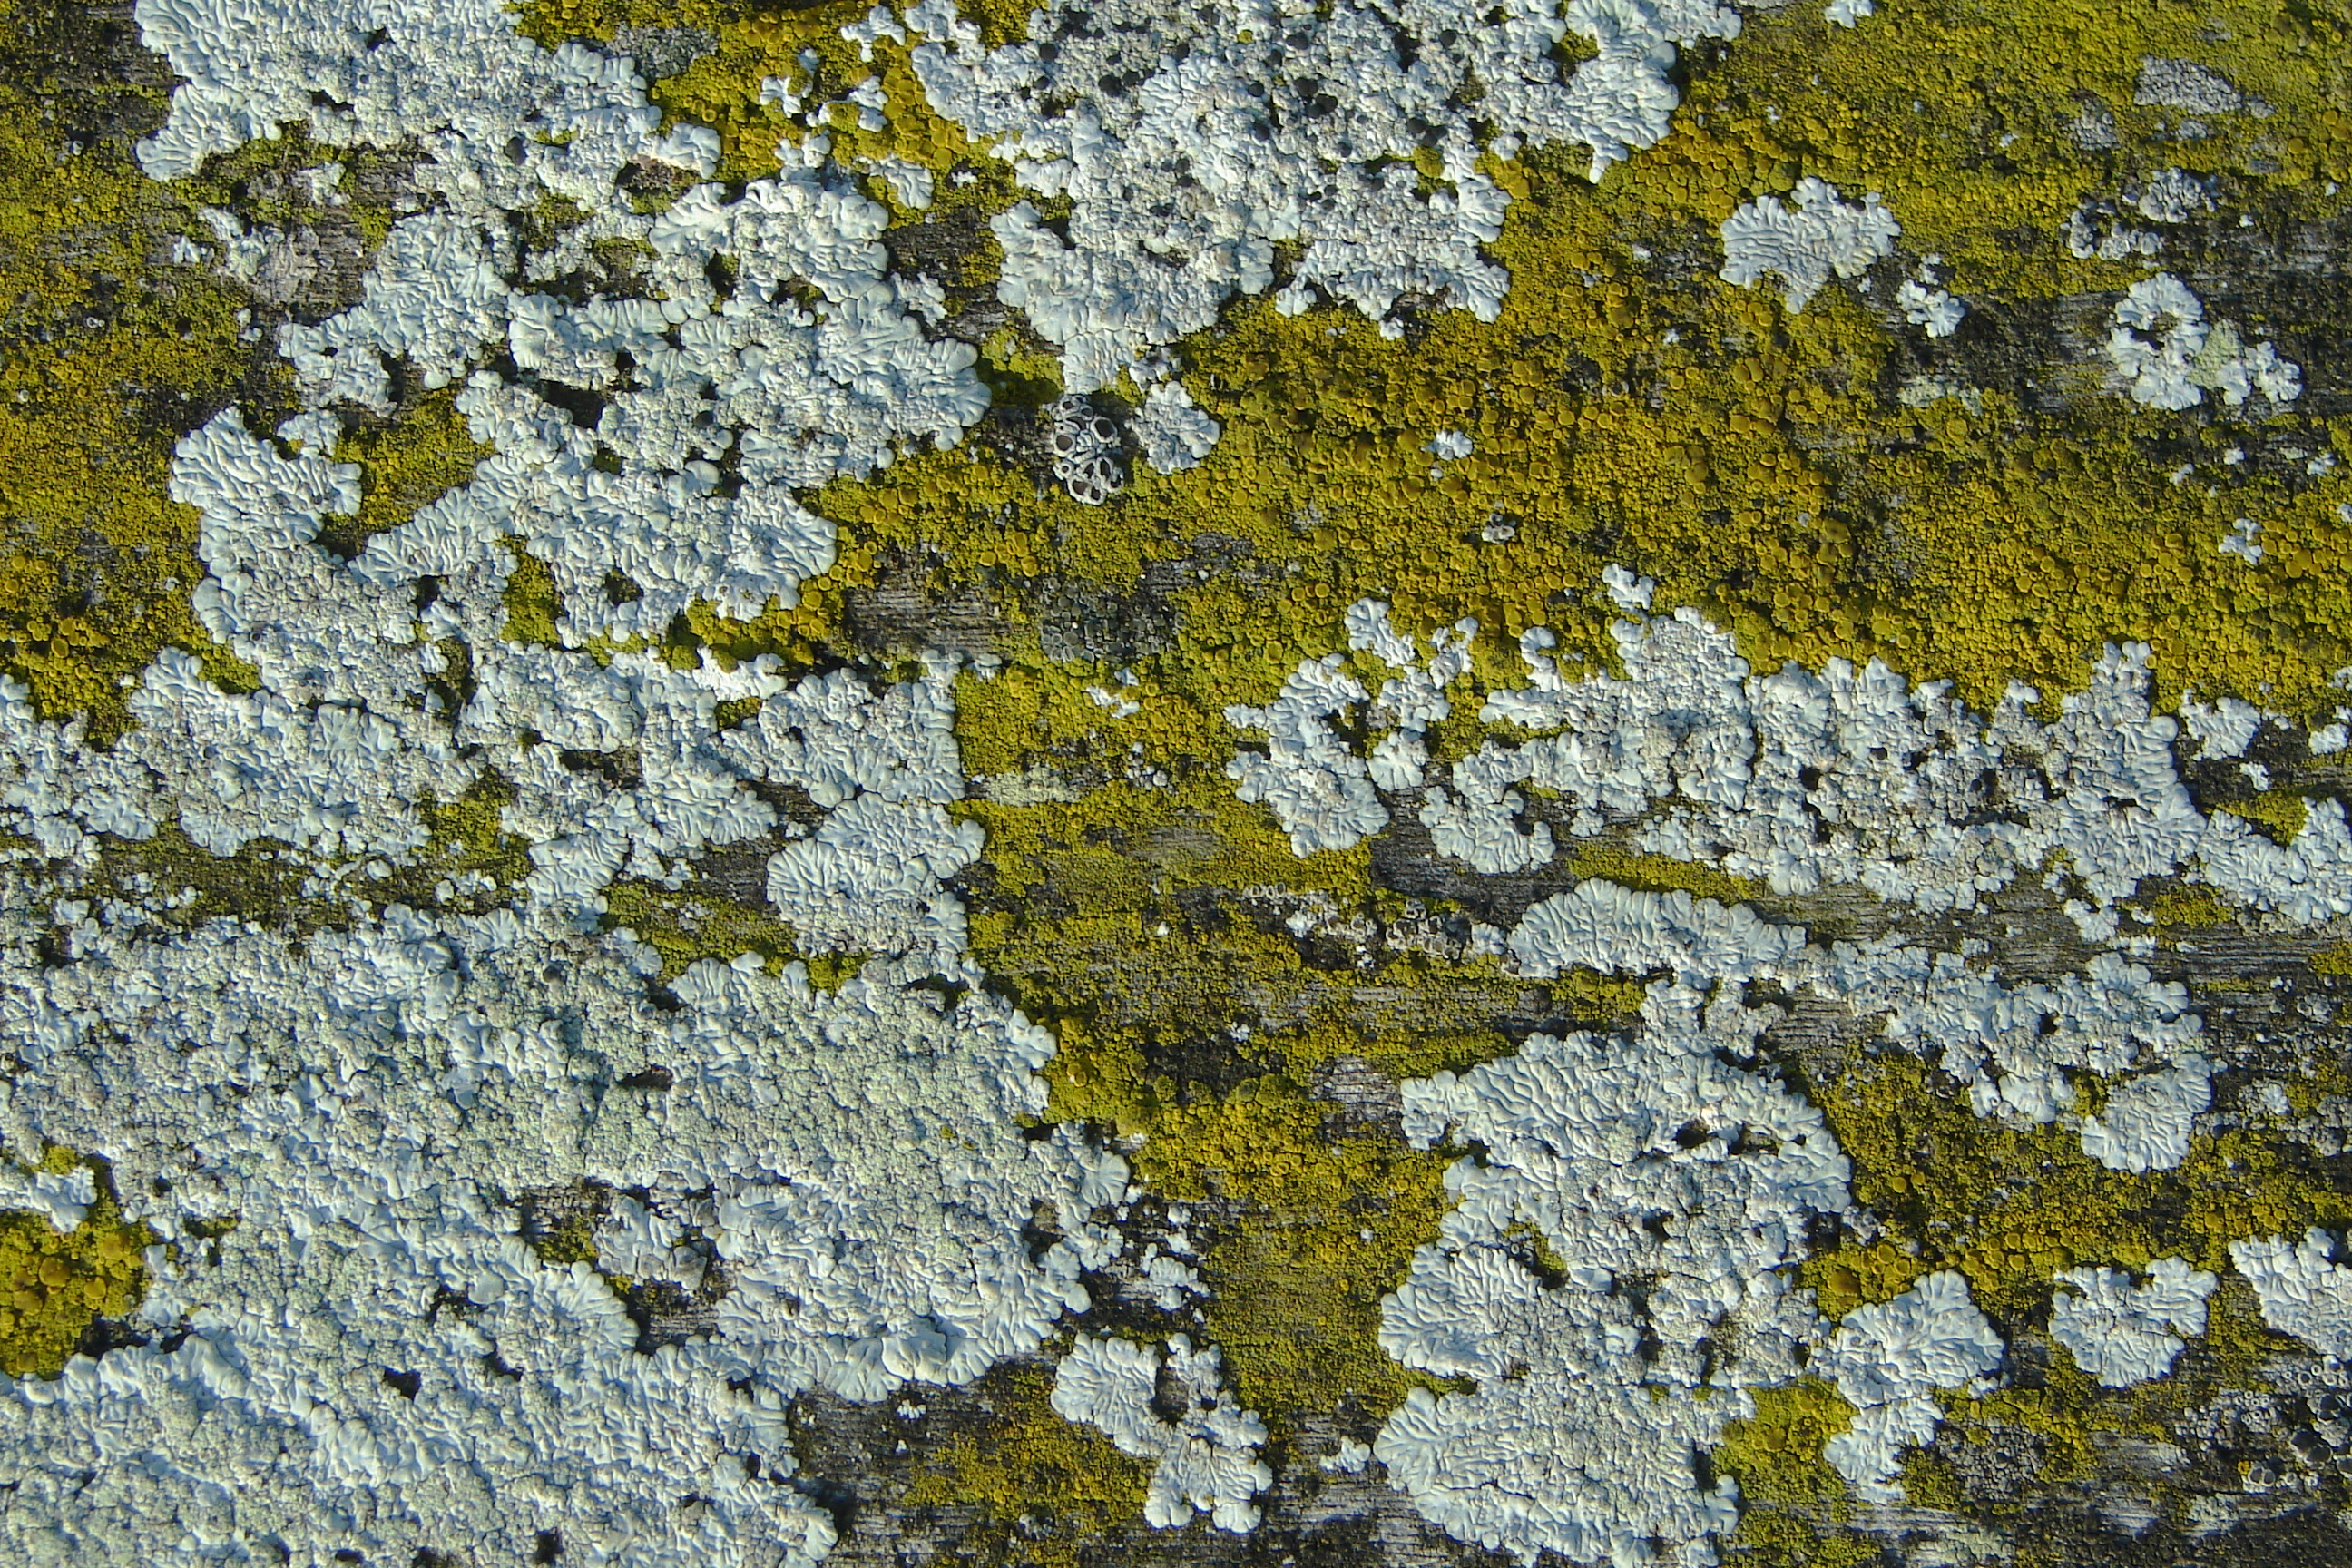 File:Lichen DSC00612.JPG - Wikimedia Commons